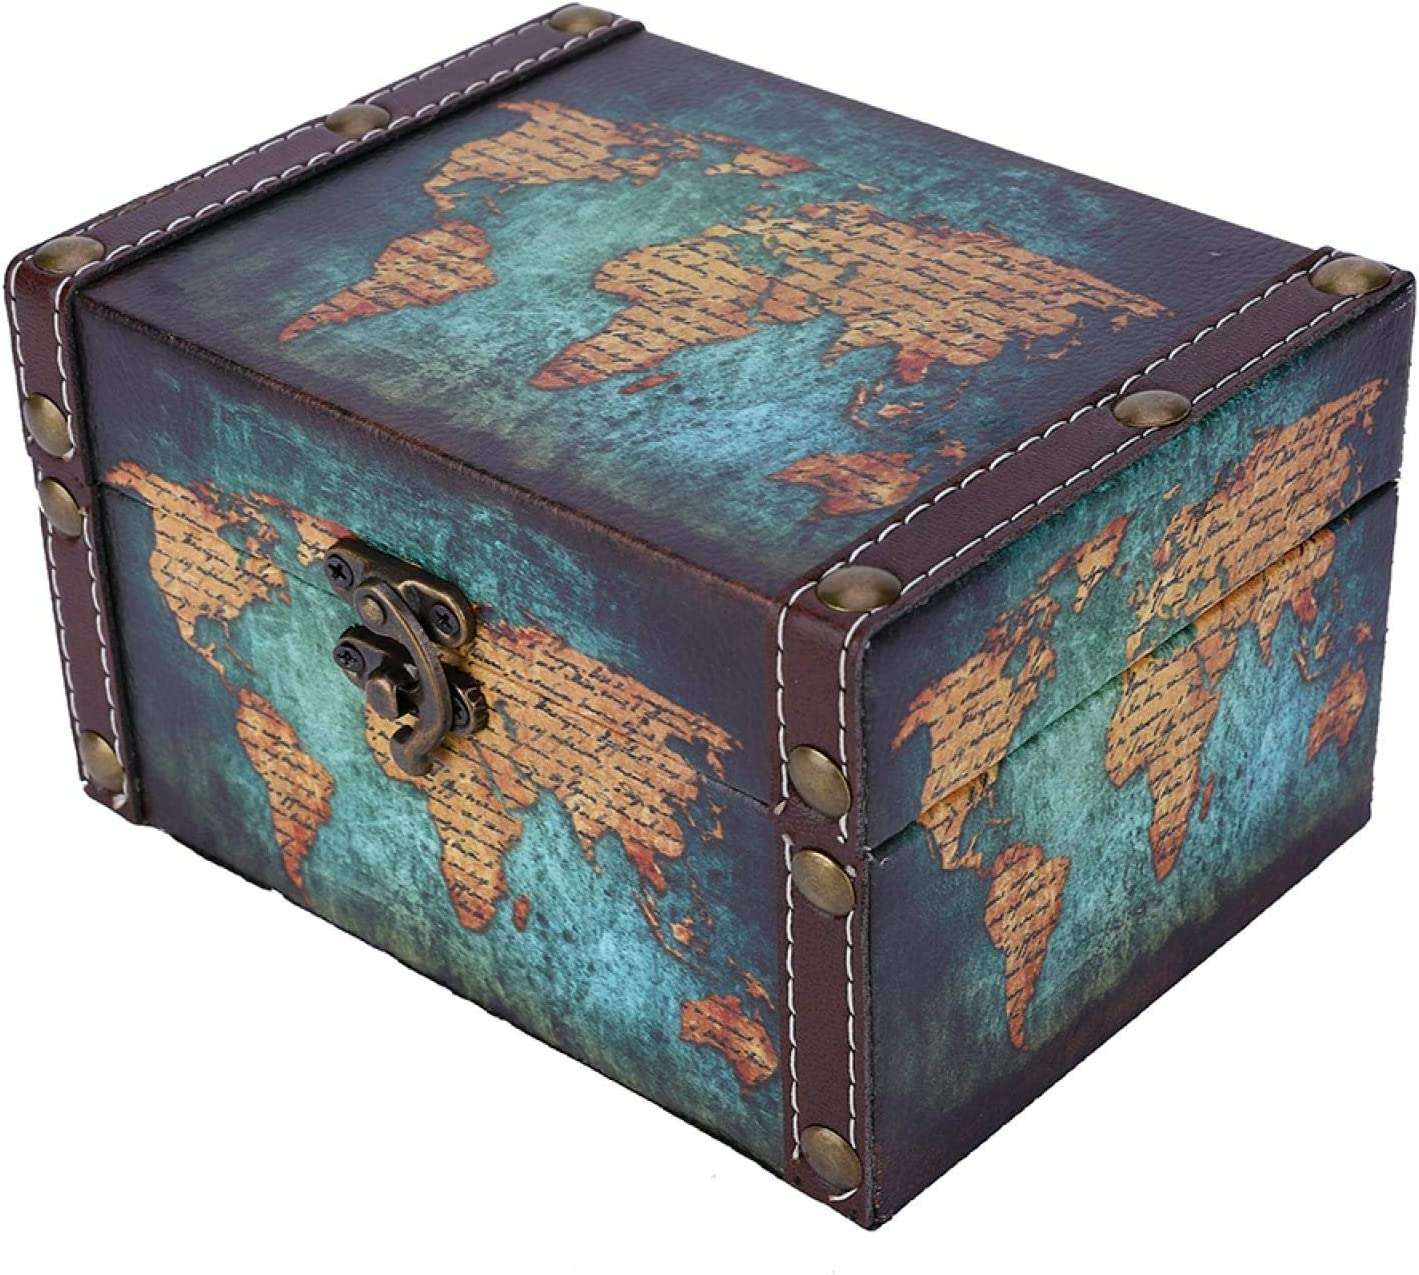 Cheap mail order Max 65% OFF sales Okuyonic Dust-Proof Jewelry Treasure Trinke Wooden Durable Chest